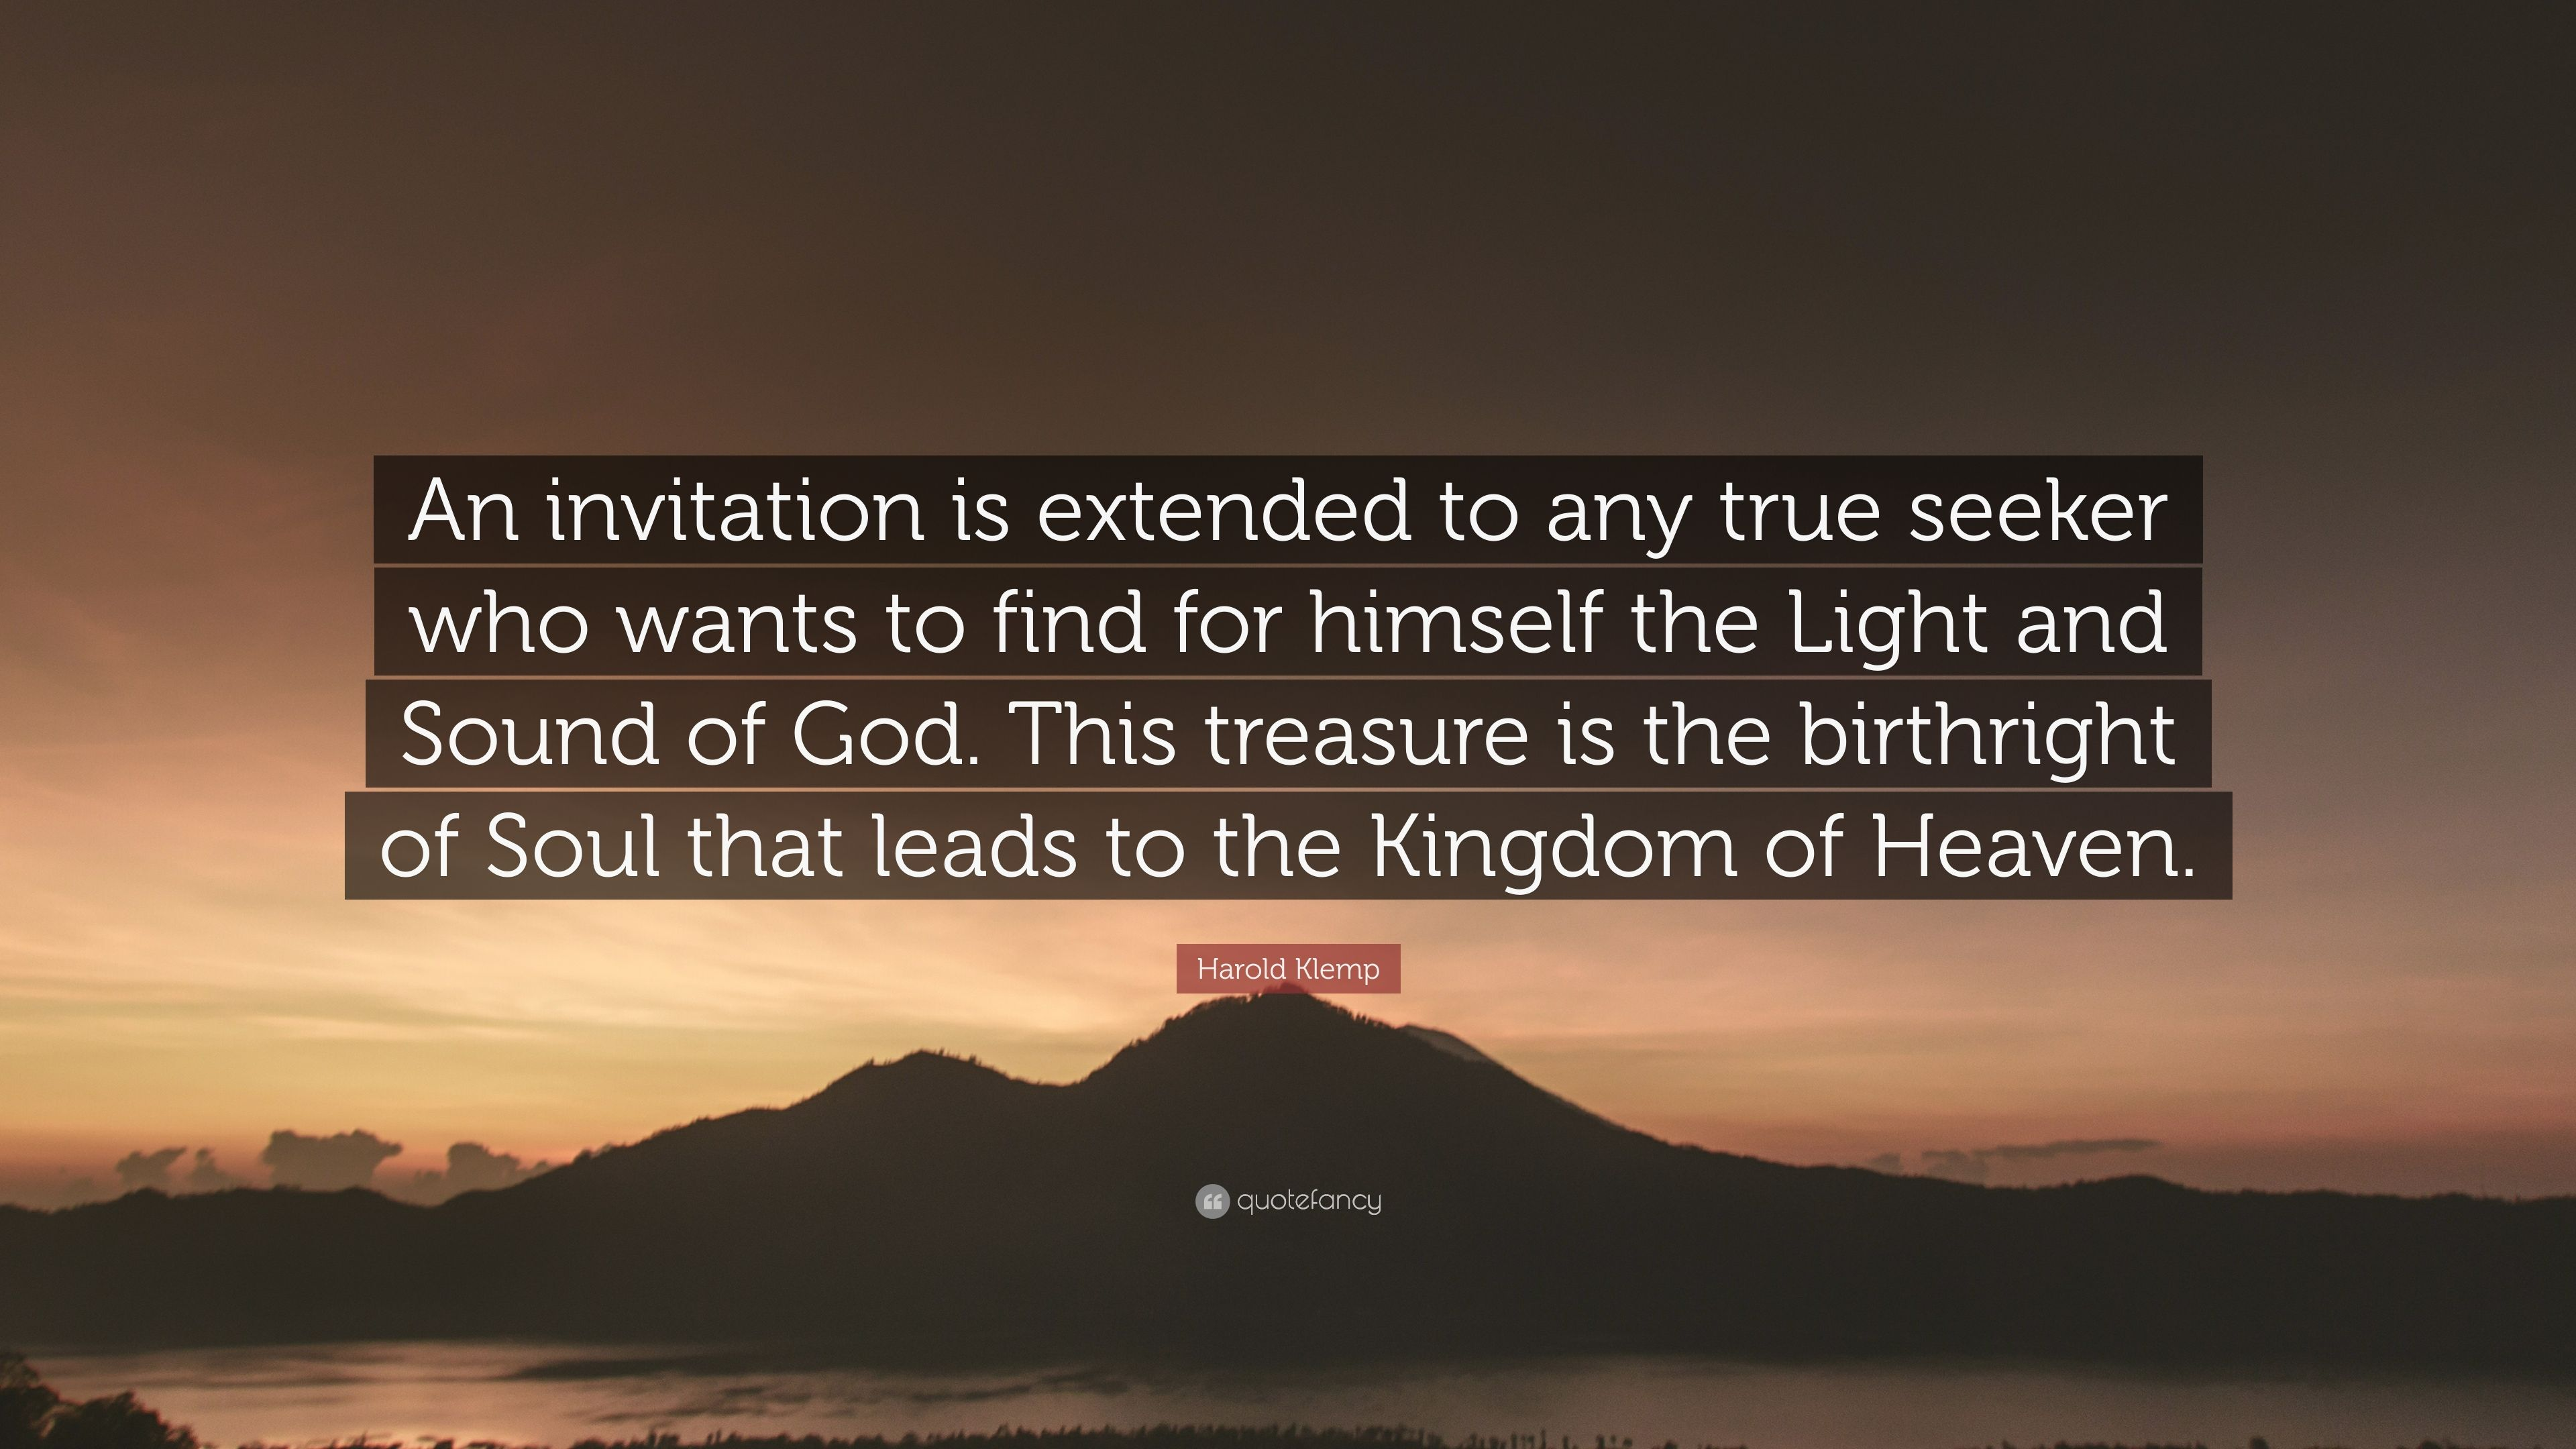 Harold klemp quote an invitation is extended to any true seeker harold klemp quote an invitation is extended to any true seeker who wants to stopboris Choice Image